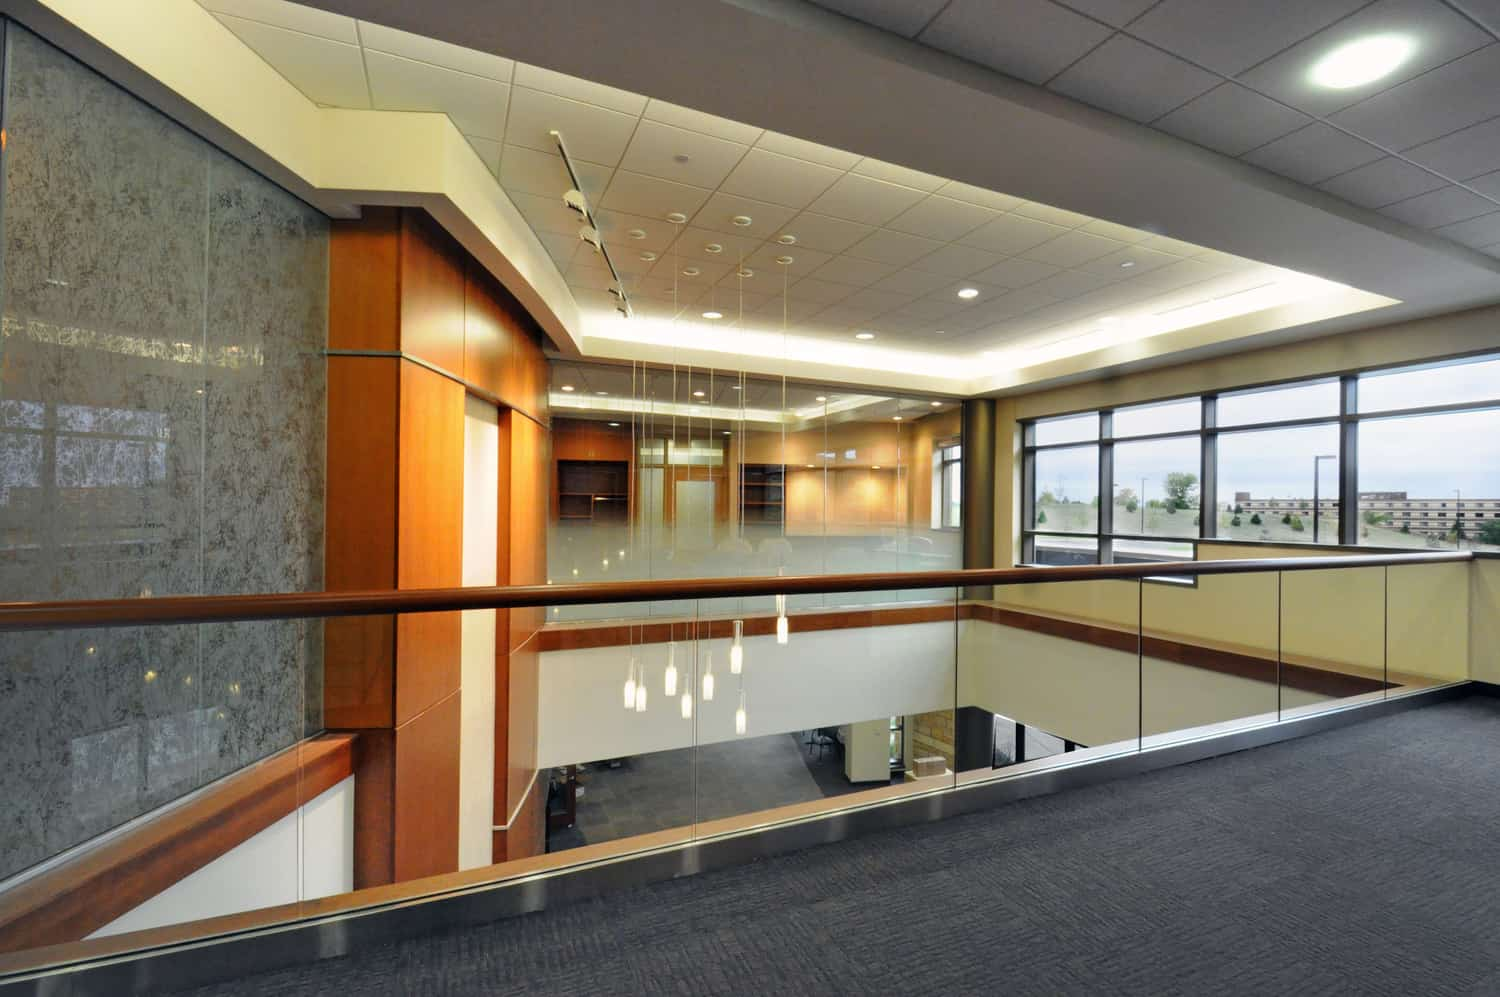 Fairview Ridges Specialty Care Center and Hospital Expansion